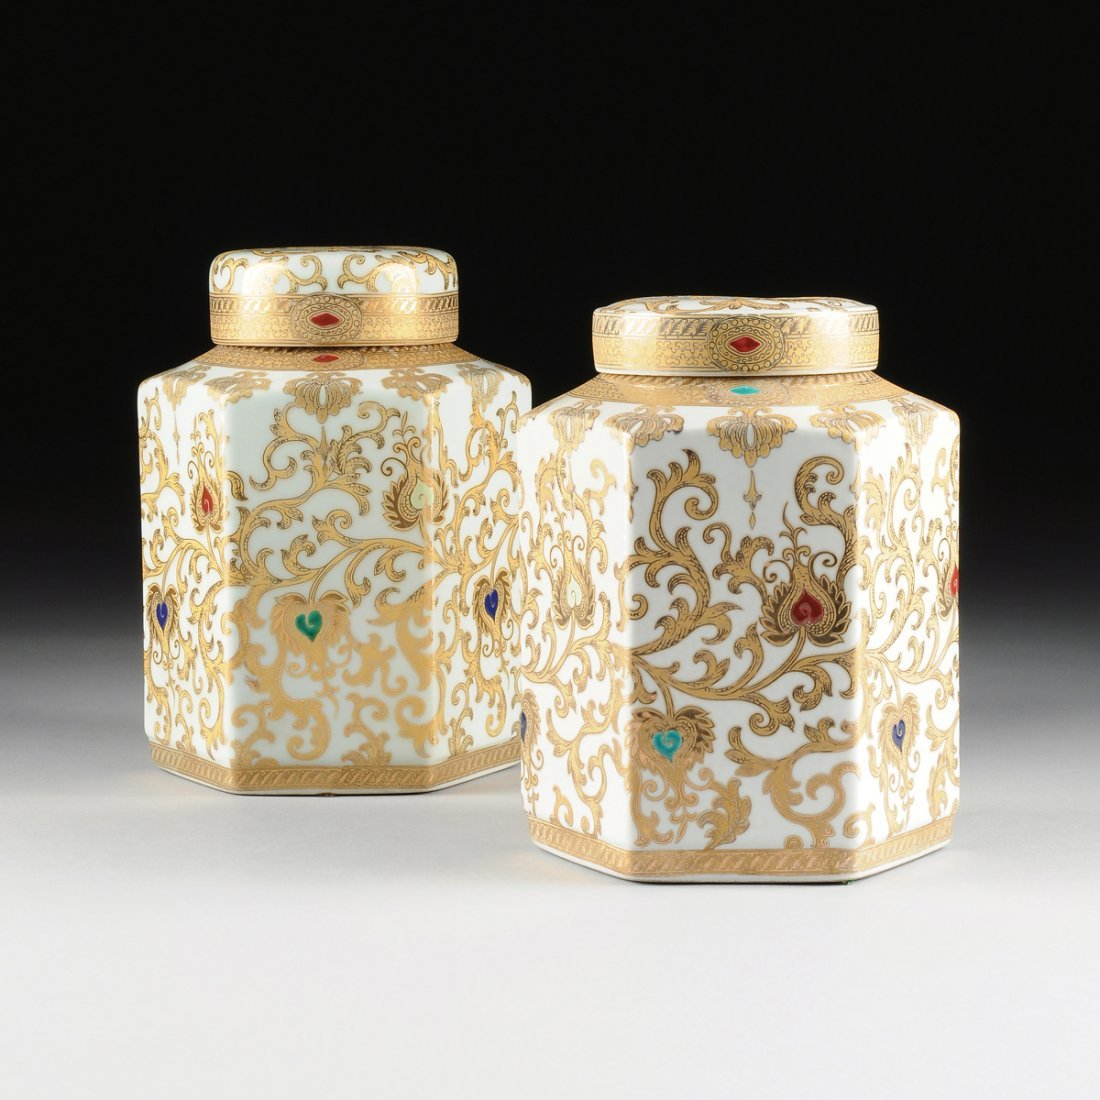 A PAIR OF CHINESE HEXAGONAL GILT AND TRANSFER PRINTED